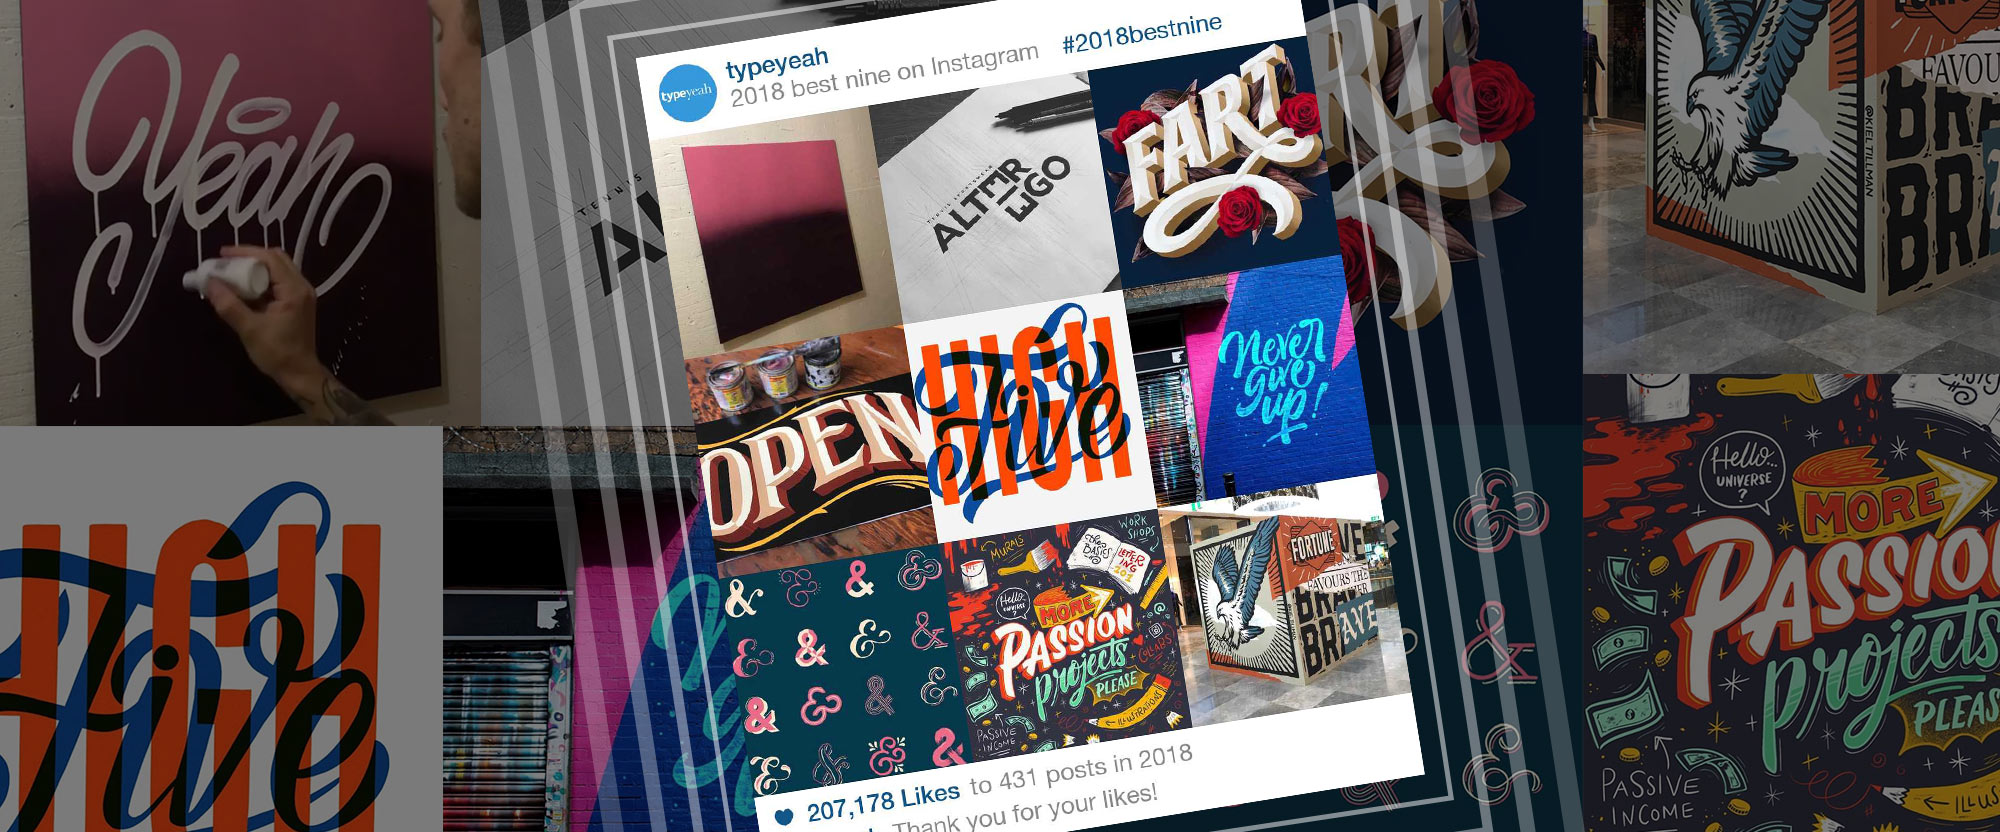 Typeyeah 2018 Instagram Best Nine